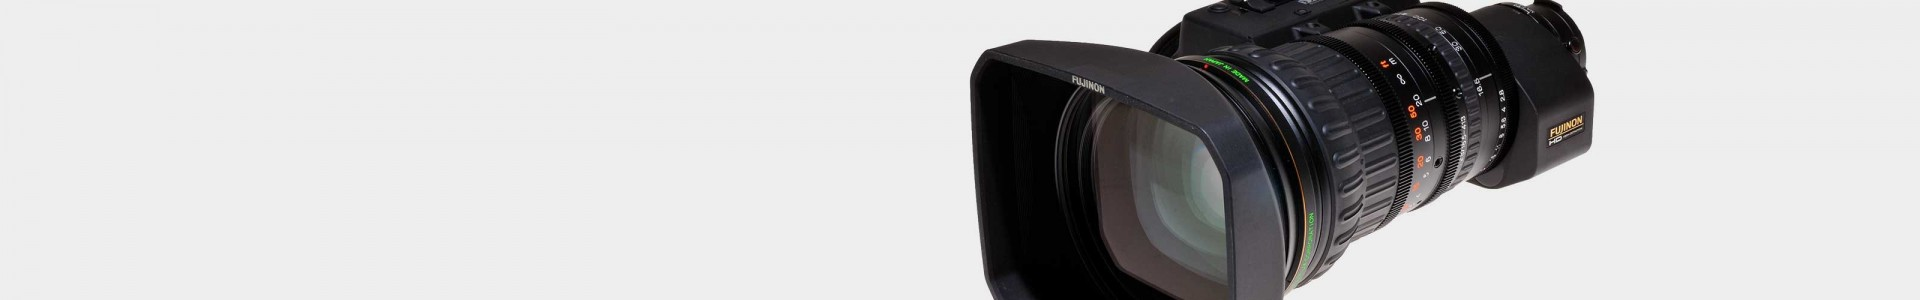 Broadcast lenses with B4 mount from Canon and Fujinon - Avacab